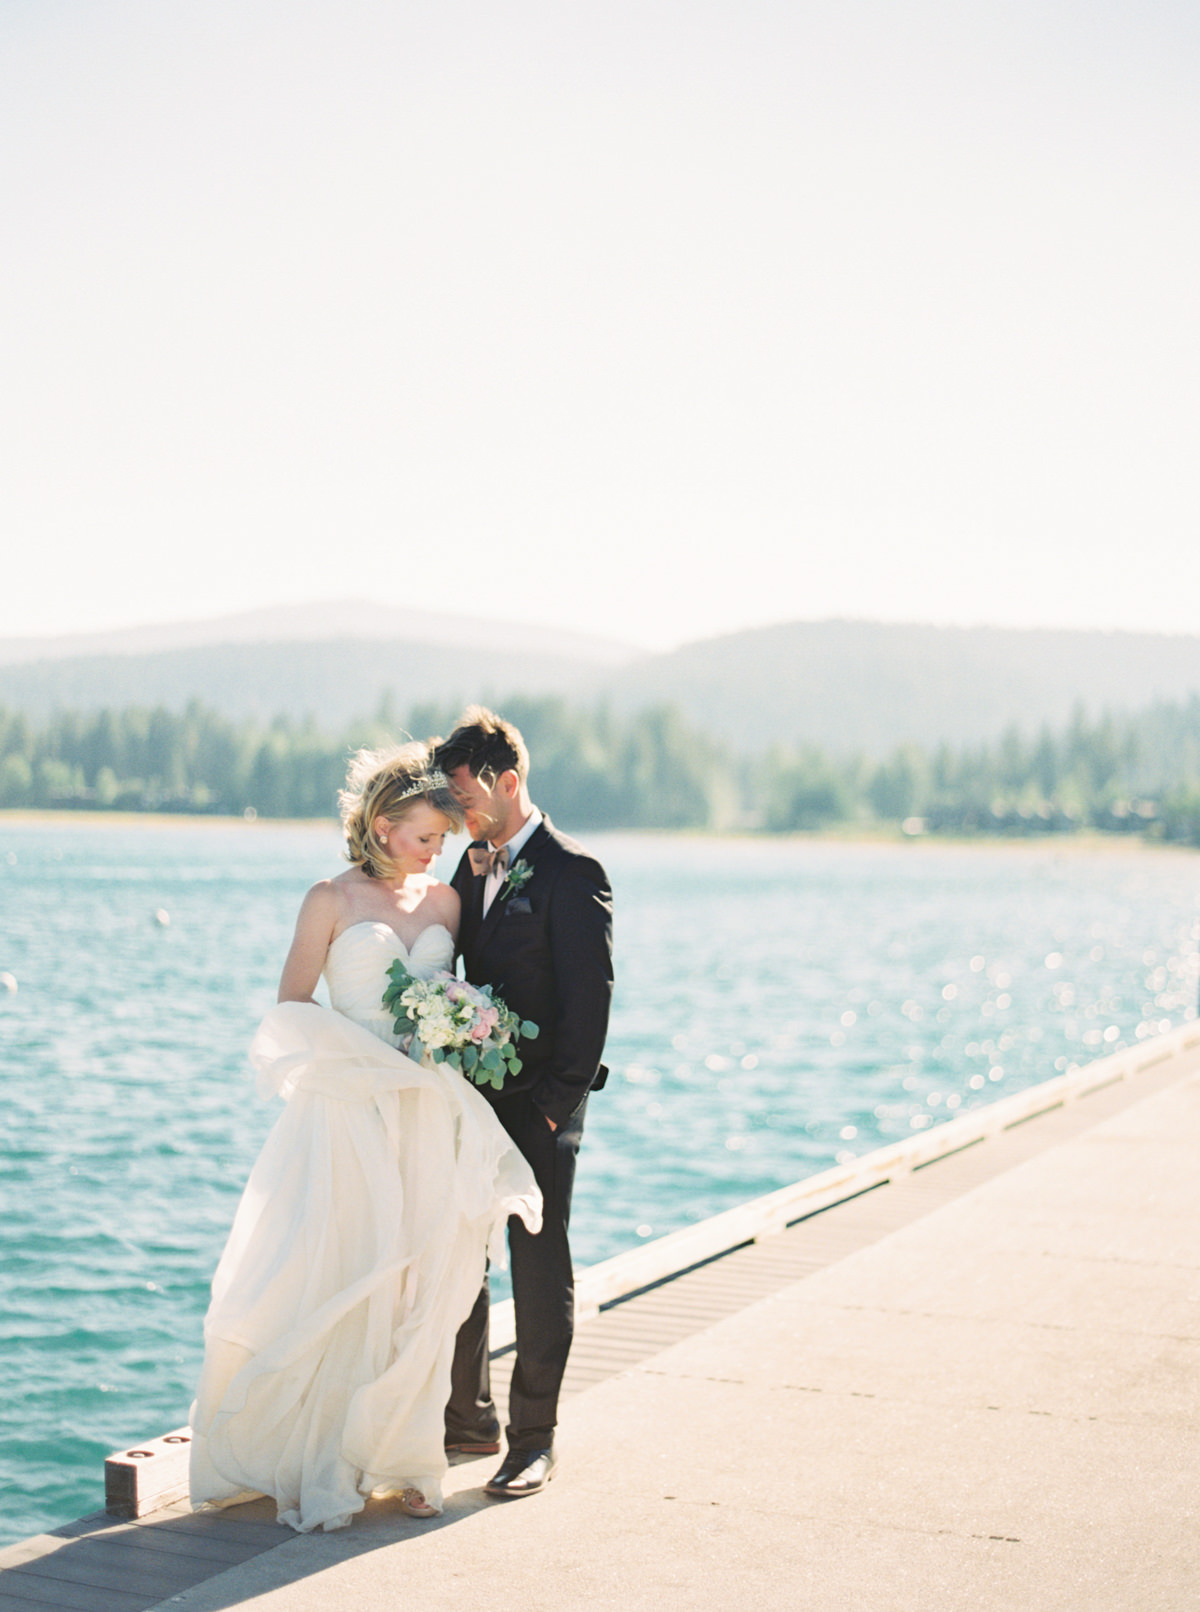 lake tahoe wedding photographer photo by Matoli Keely Photography